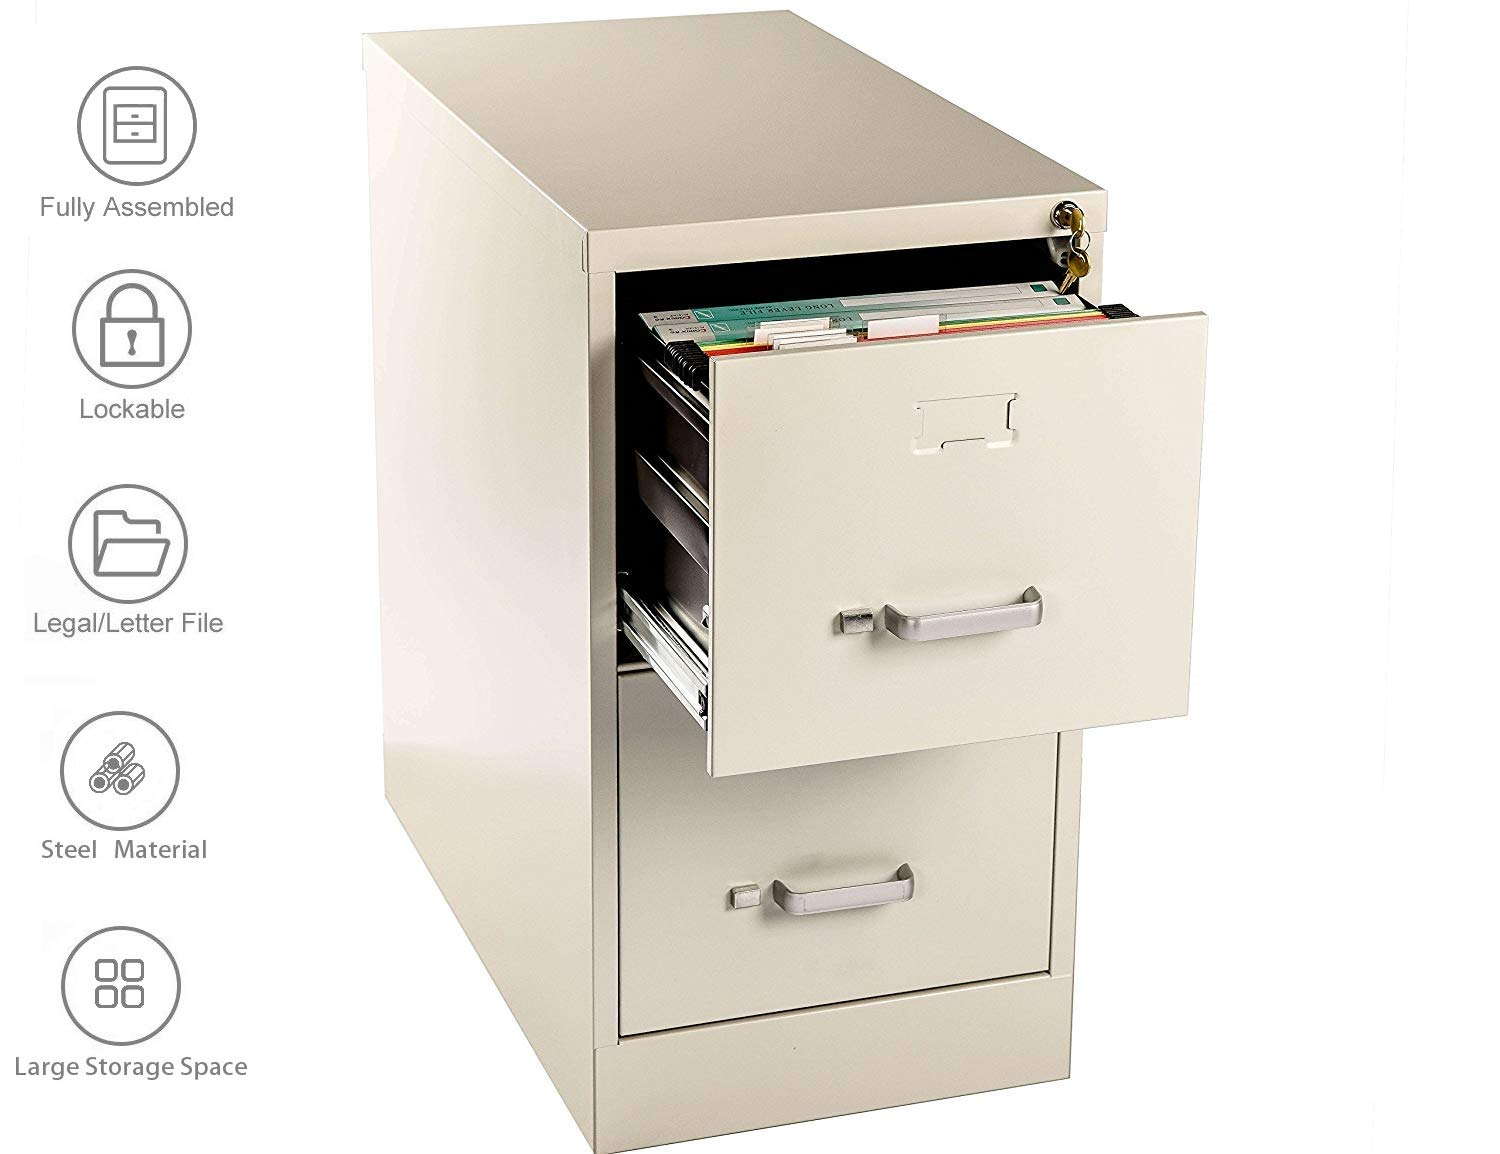 Henlus 2 Drawer Flie Cabinet with Lock Fully Assembled Metal Filing Cabinets for Home Office(Putty) (Putty, 2 Drawer) by Henlus (Image #1)